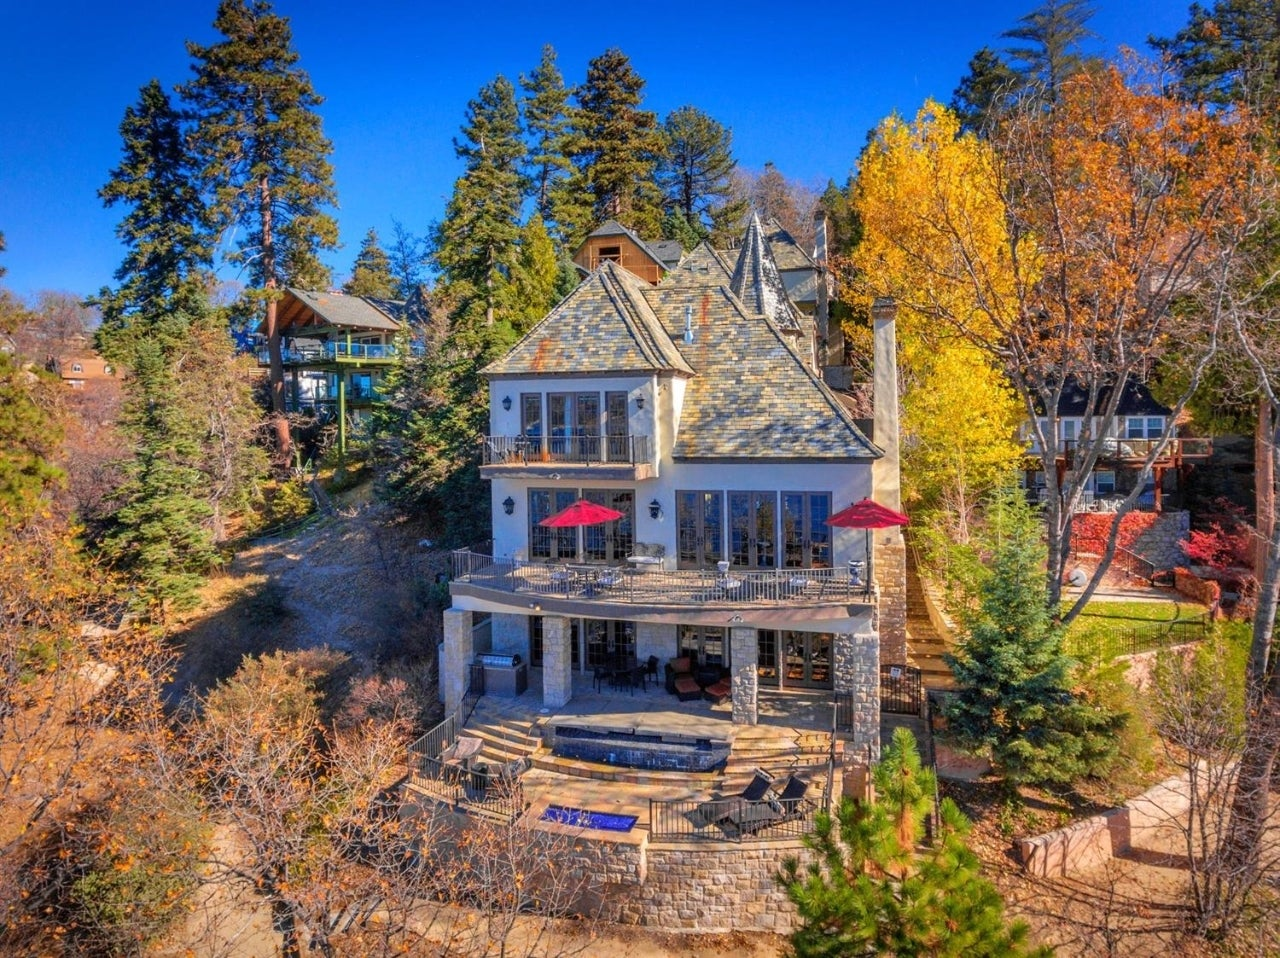 Sammy Hagar Lake Arrowhead Home (26)